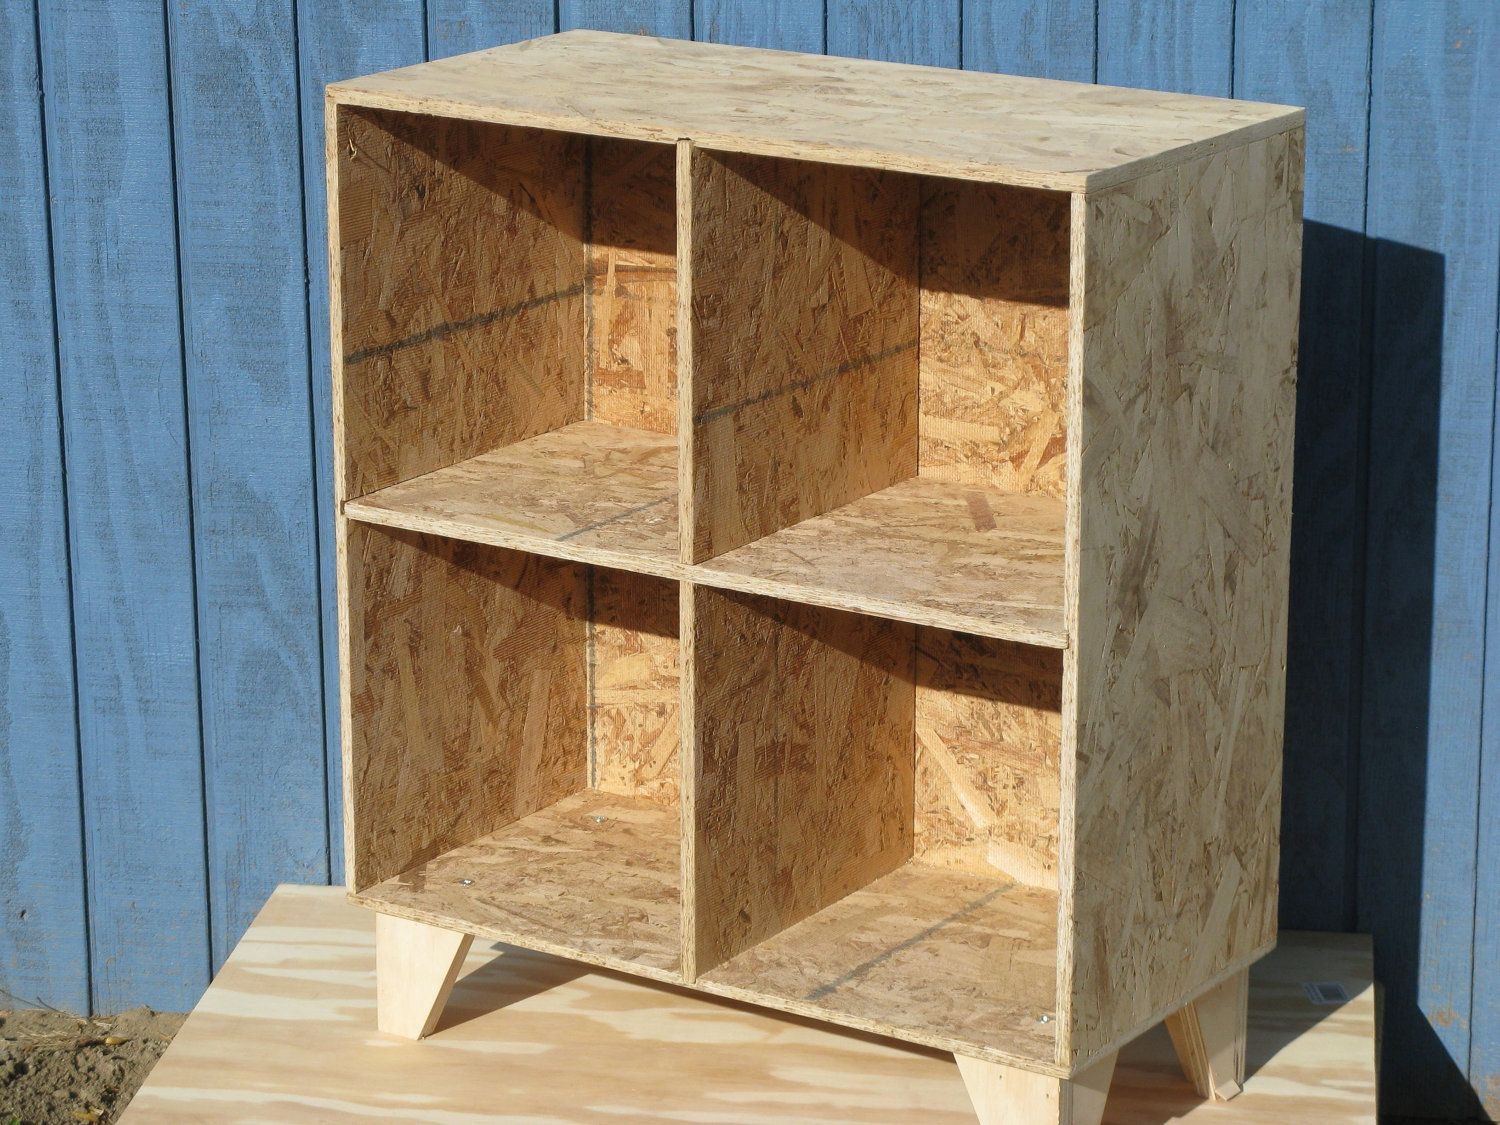 osb bookcase | Decorate it | Pinterest | Plywood, Osb board and Woods